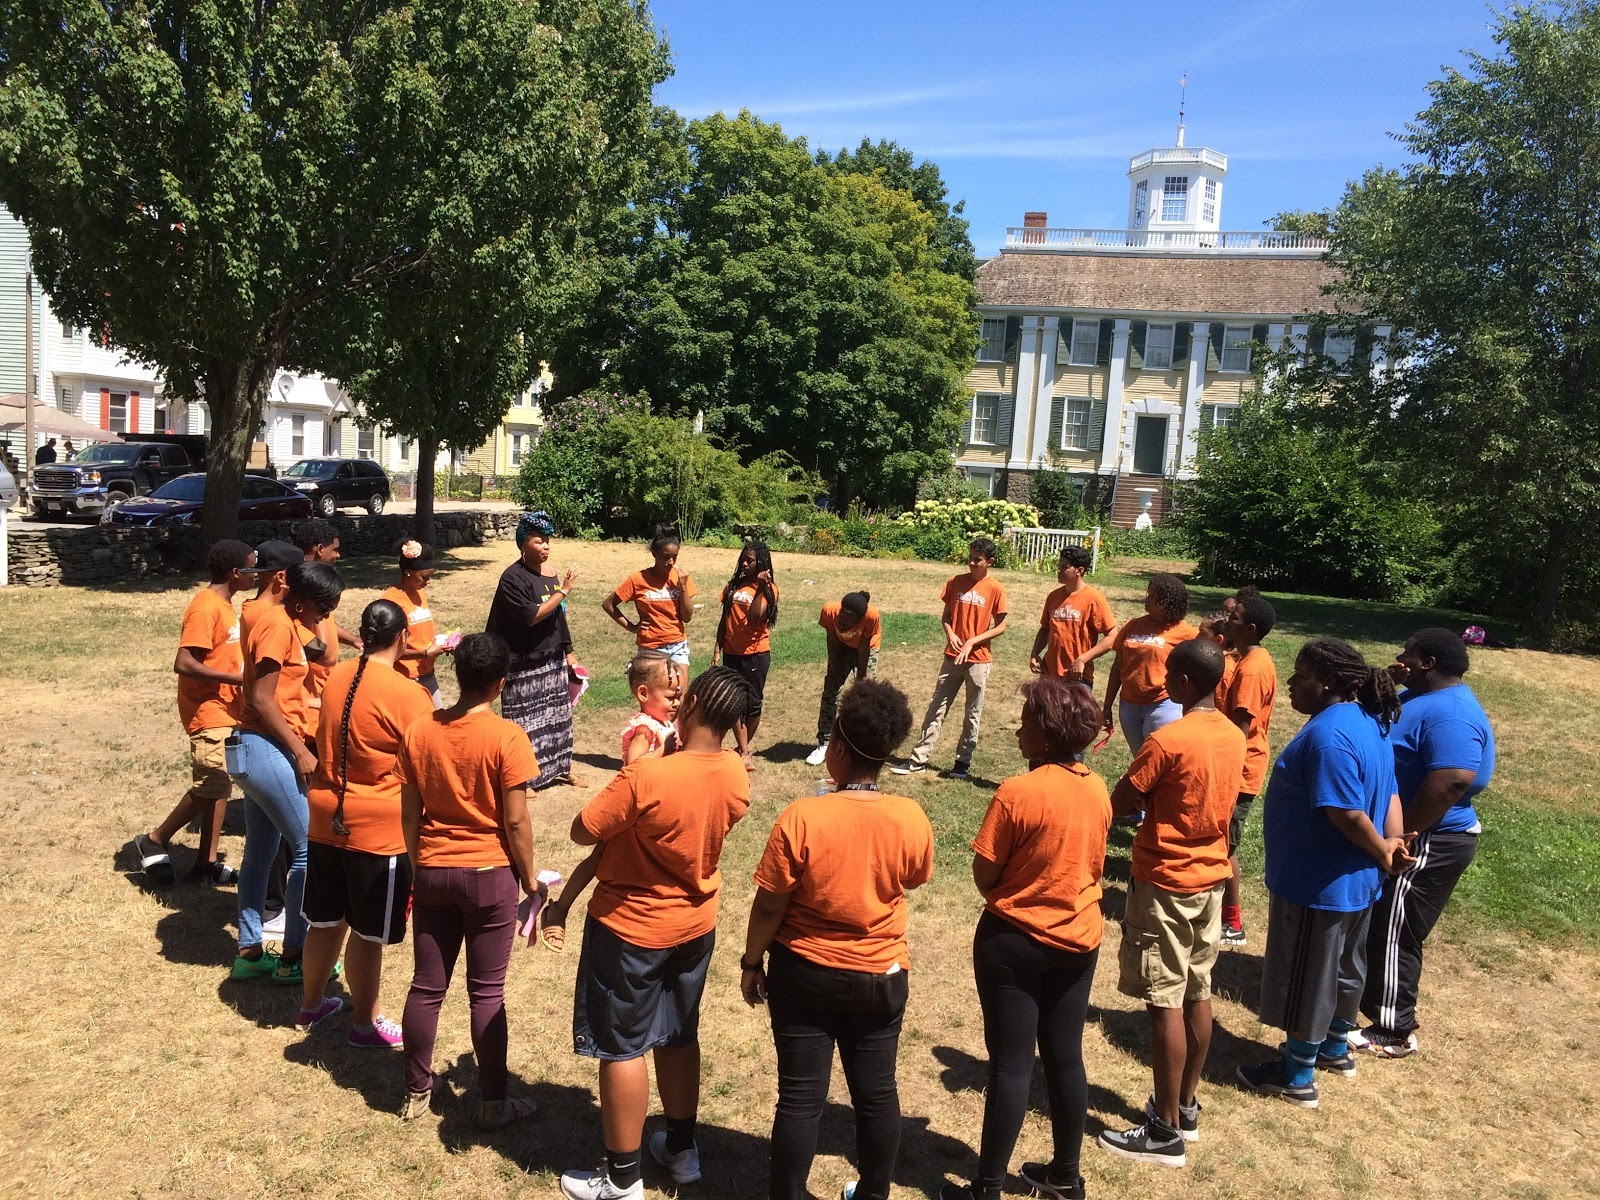 Summer Youth Organizer prepare for DSNI's 28th Annual Multicultural Festival. Image shows young people in orange shirts standing in a circle in front of the Shirley Eustis House in Roxbury. Photography by Ros Everdell.